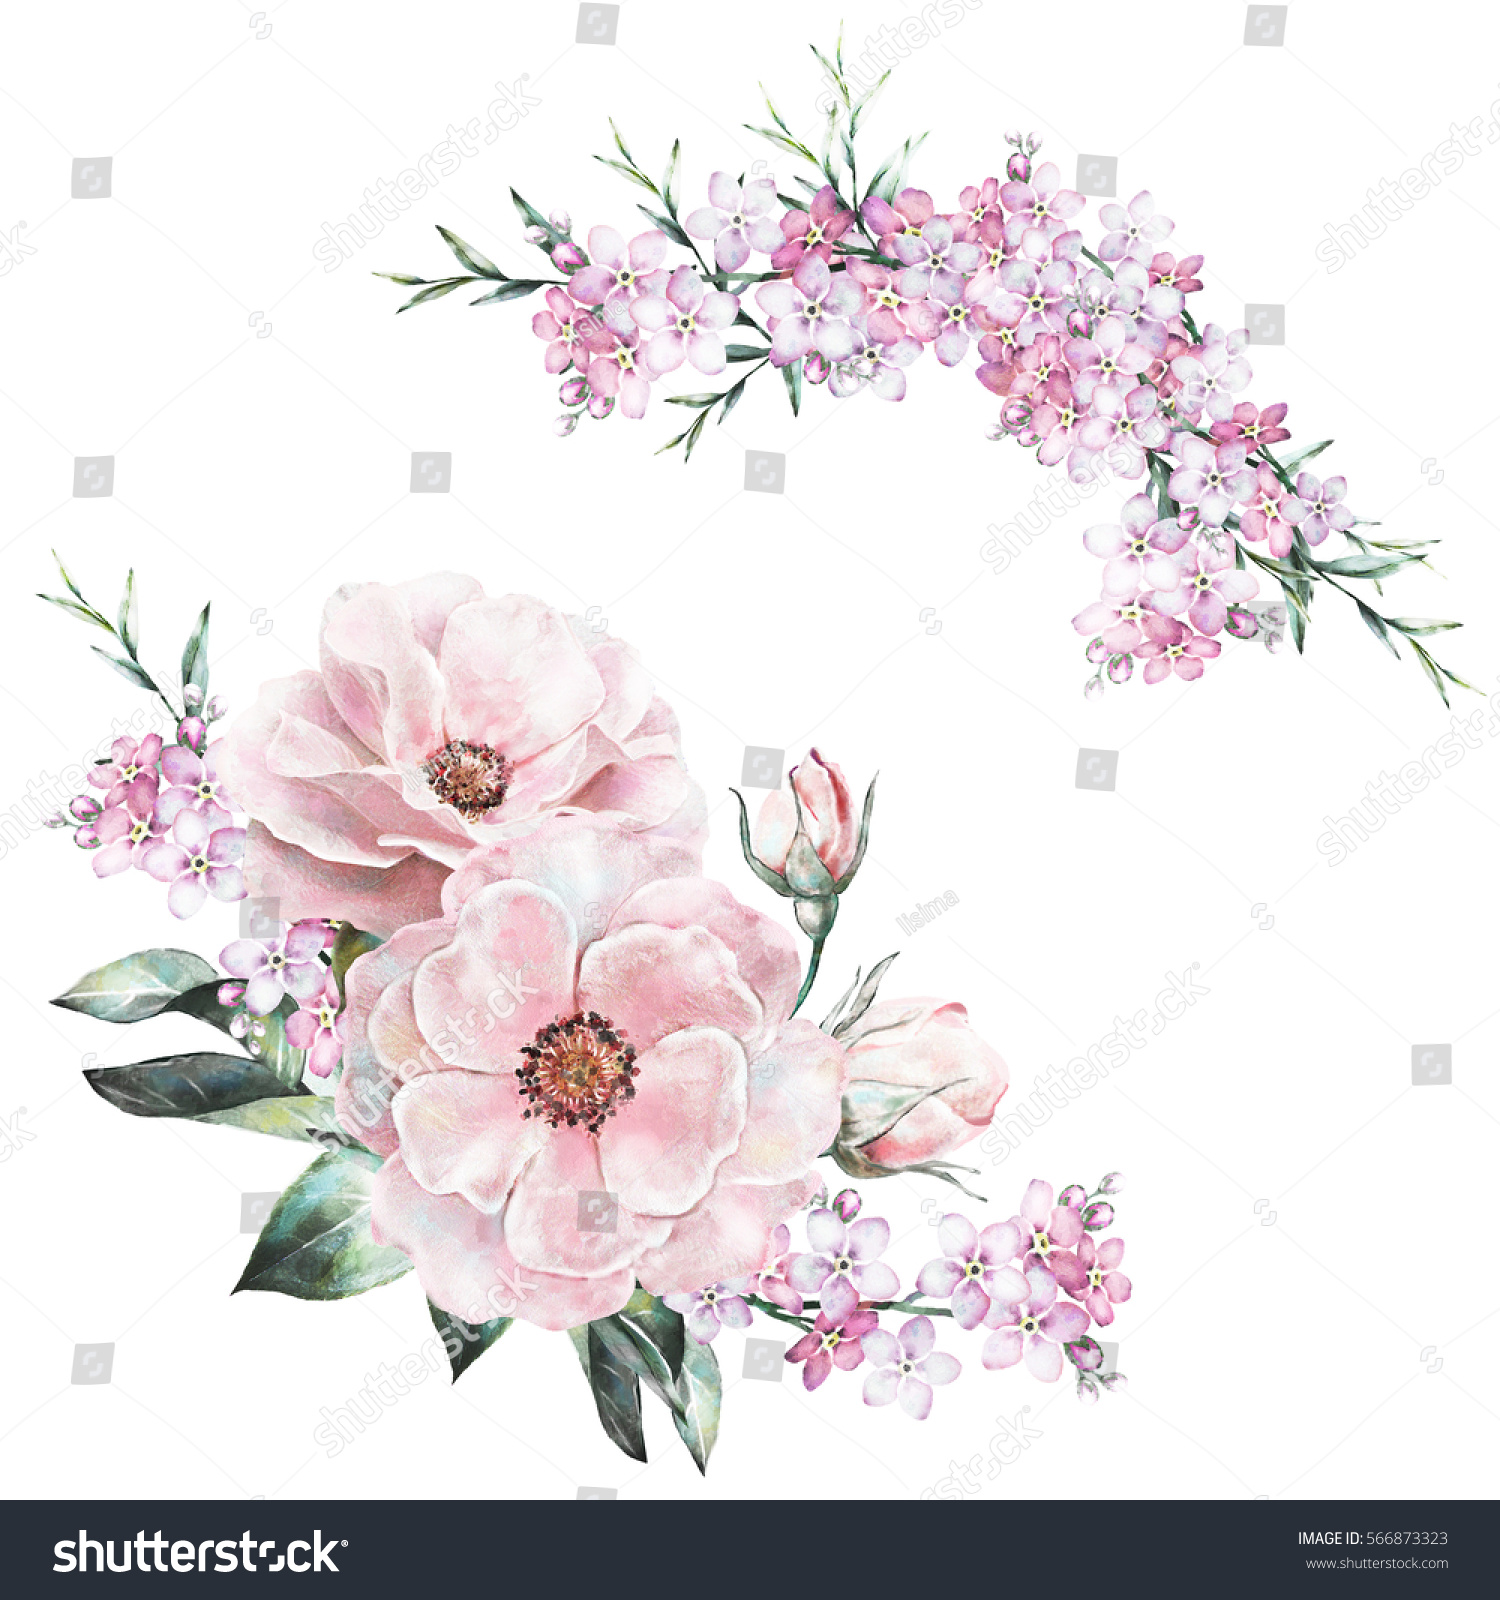 Watercolor flowers floral illustration pastel colors stok watercolor flowers floral illustration in pastel colors rose bunch of pink flowers isolated izmirmasajfo